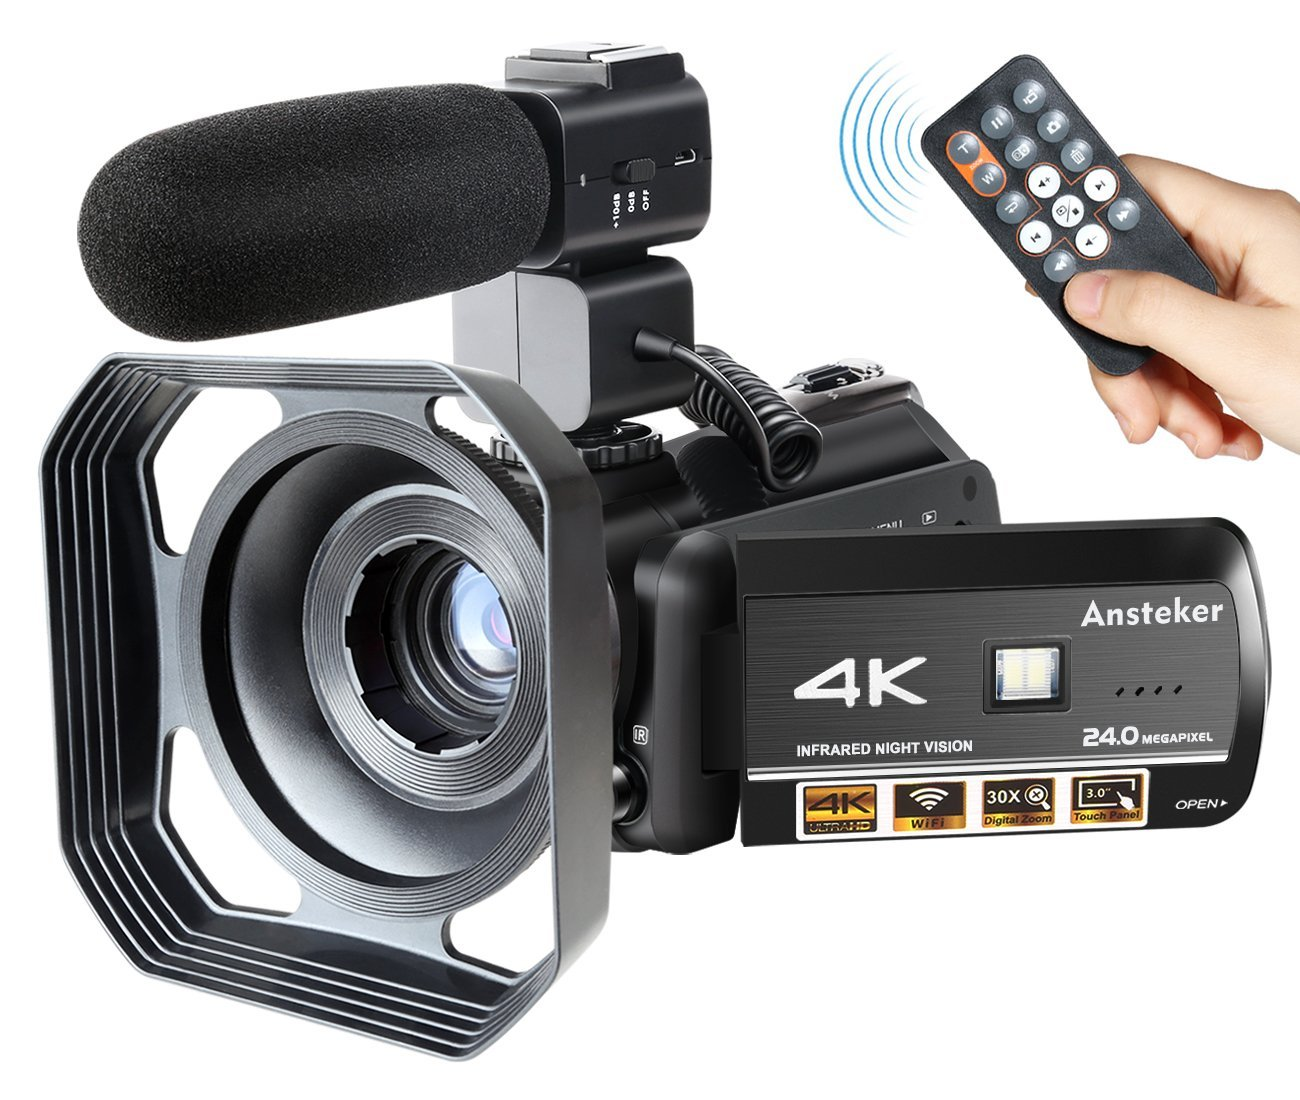 Ansteker Videocámara 4 K WiFi Ultra HD Cámara Digital Video 1080P 13MP 30FPS IR Night Vision Camcorder con Micrófono y Parasol